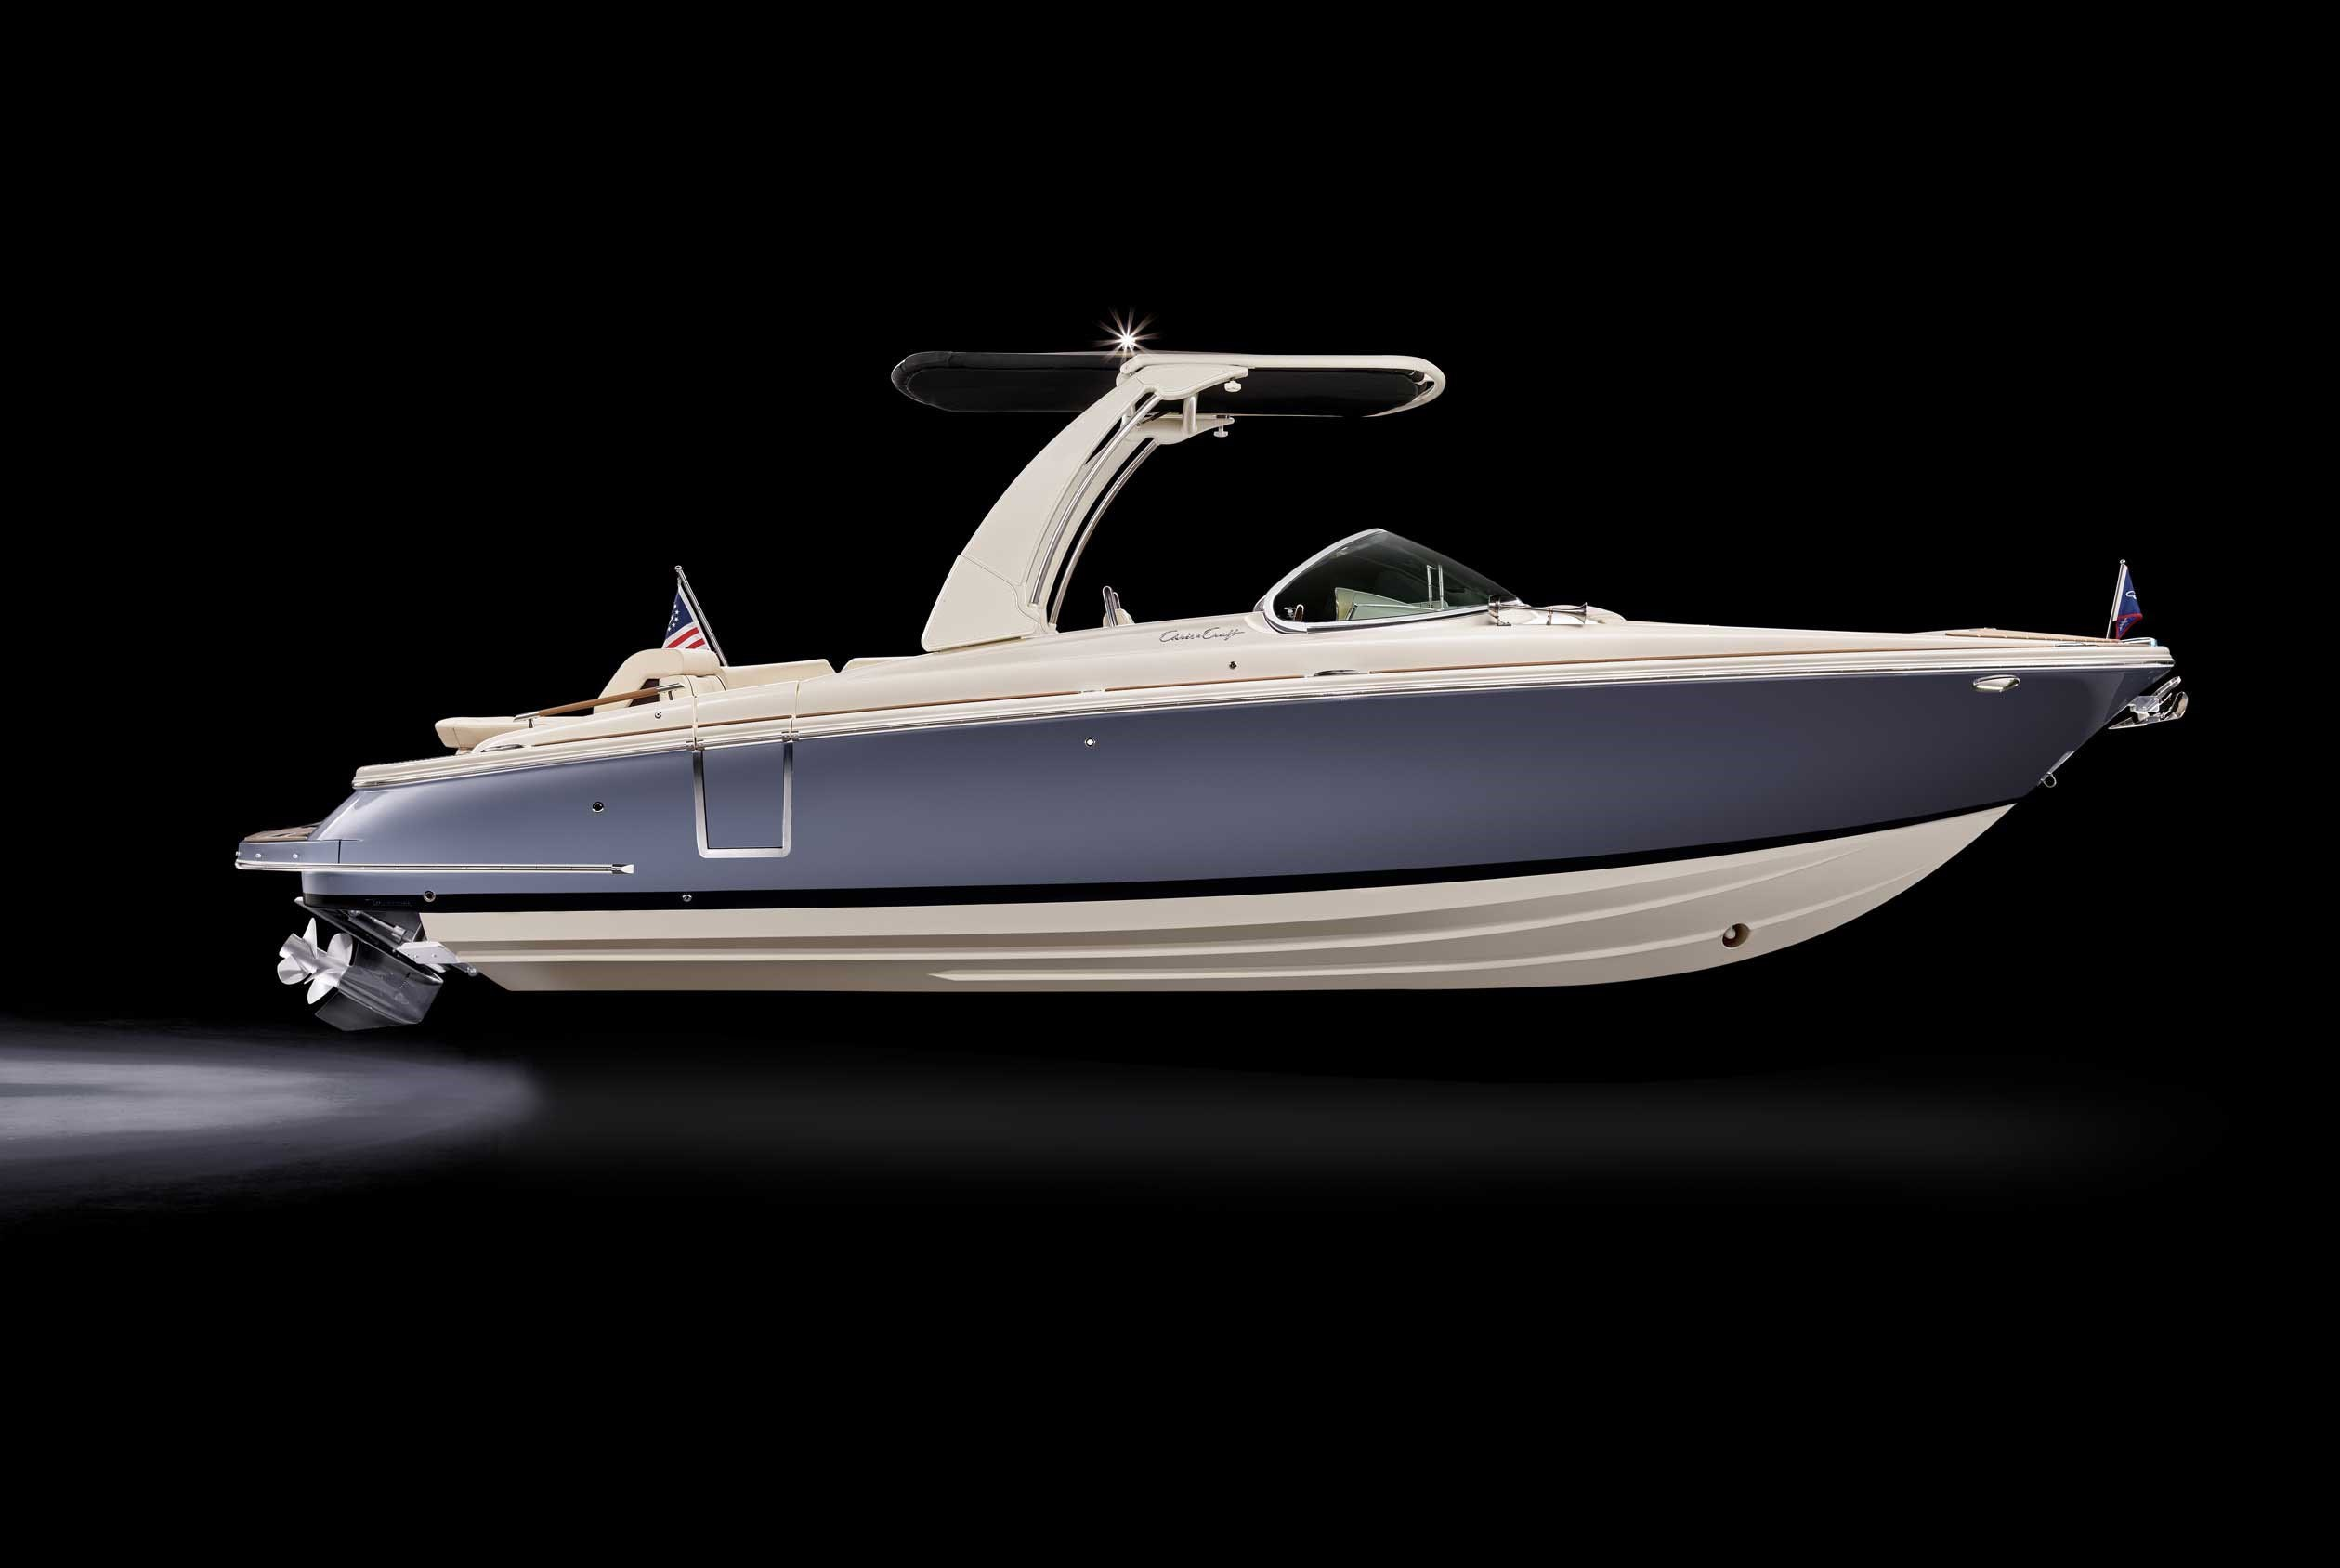 2019 CHRIS-CRAFT LAUNCH 28 GT